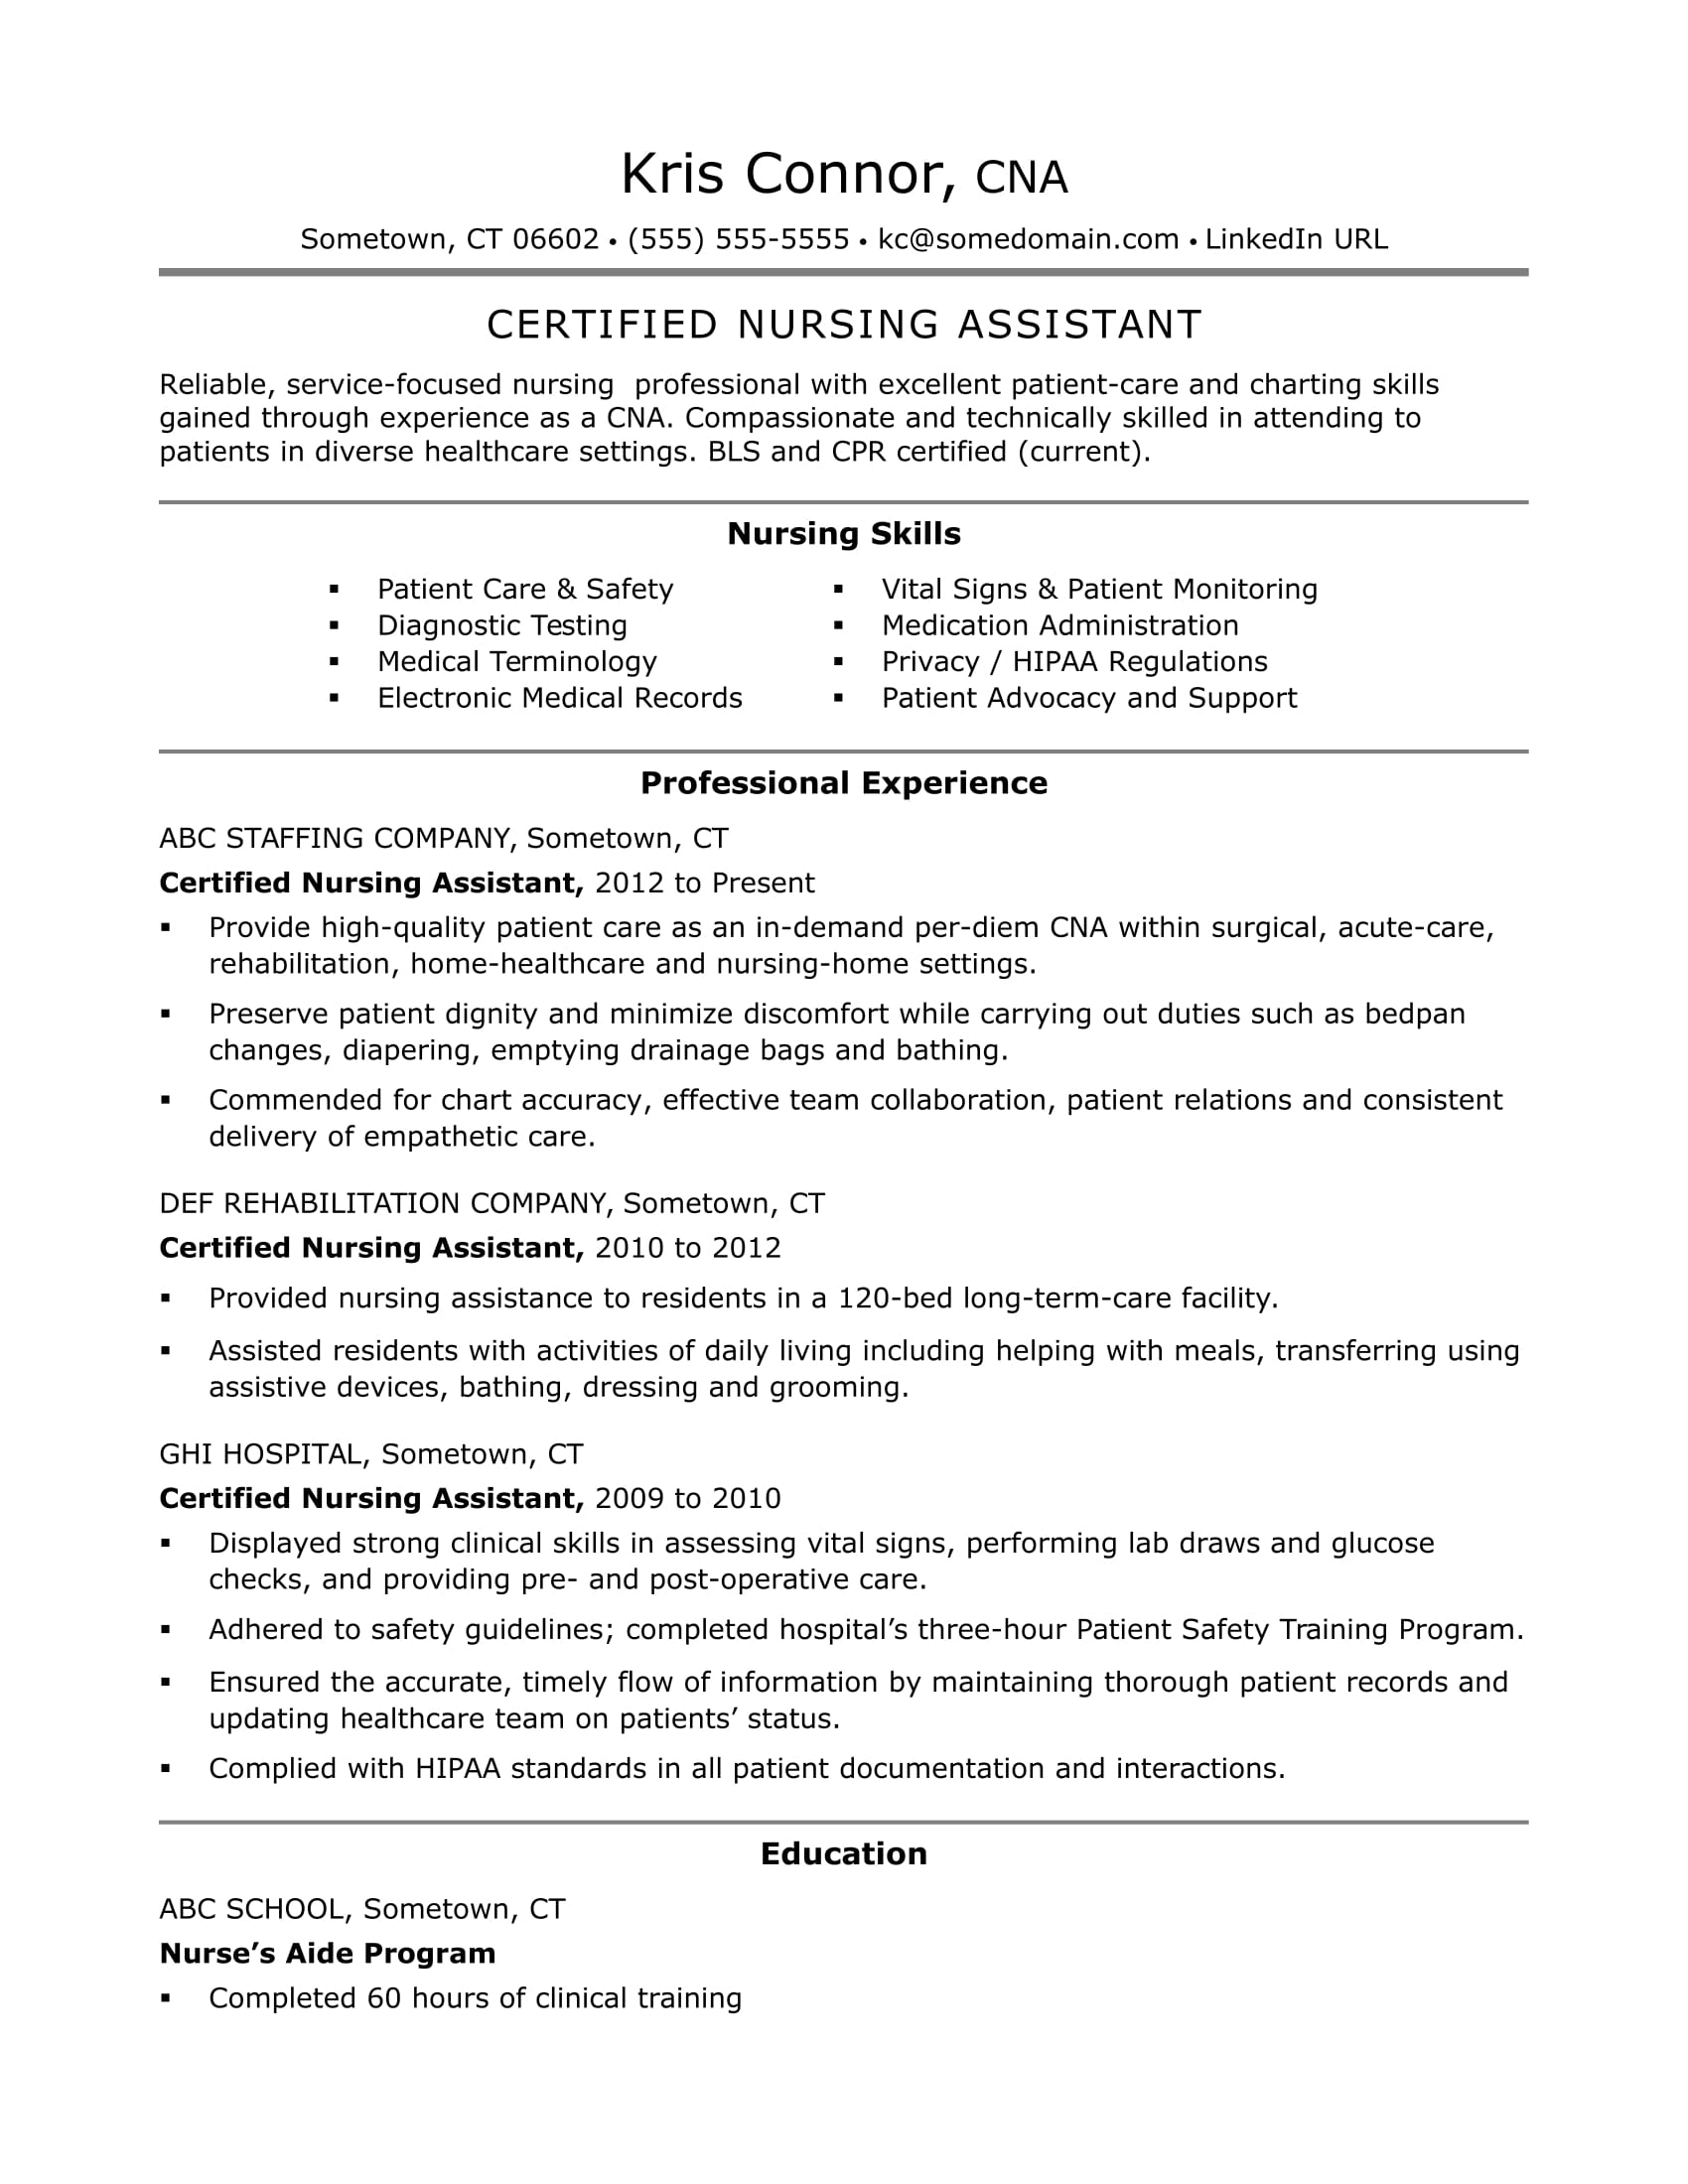 cna resume examples skills for cnas monster certified nursing assistant objective project Resume Certified Nursing Assistant Resume Objective